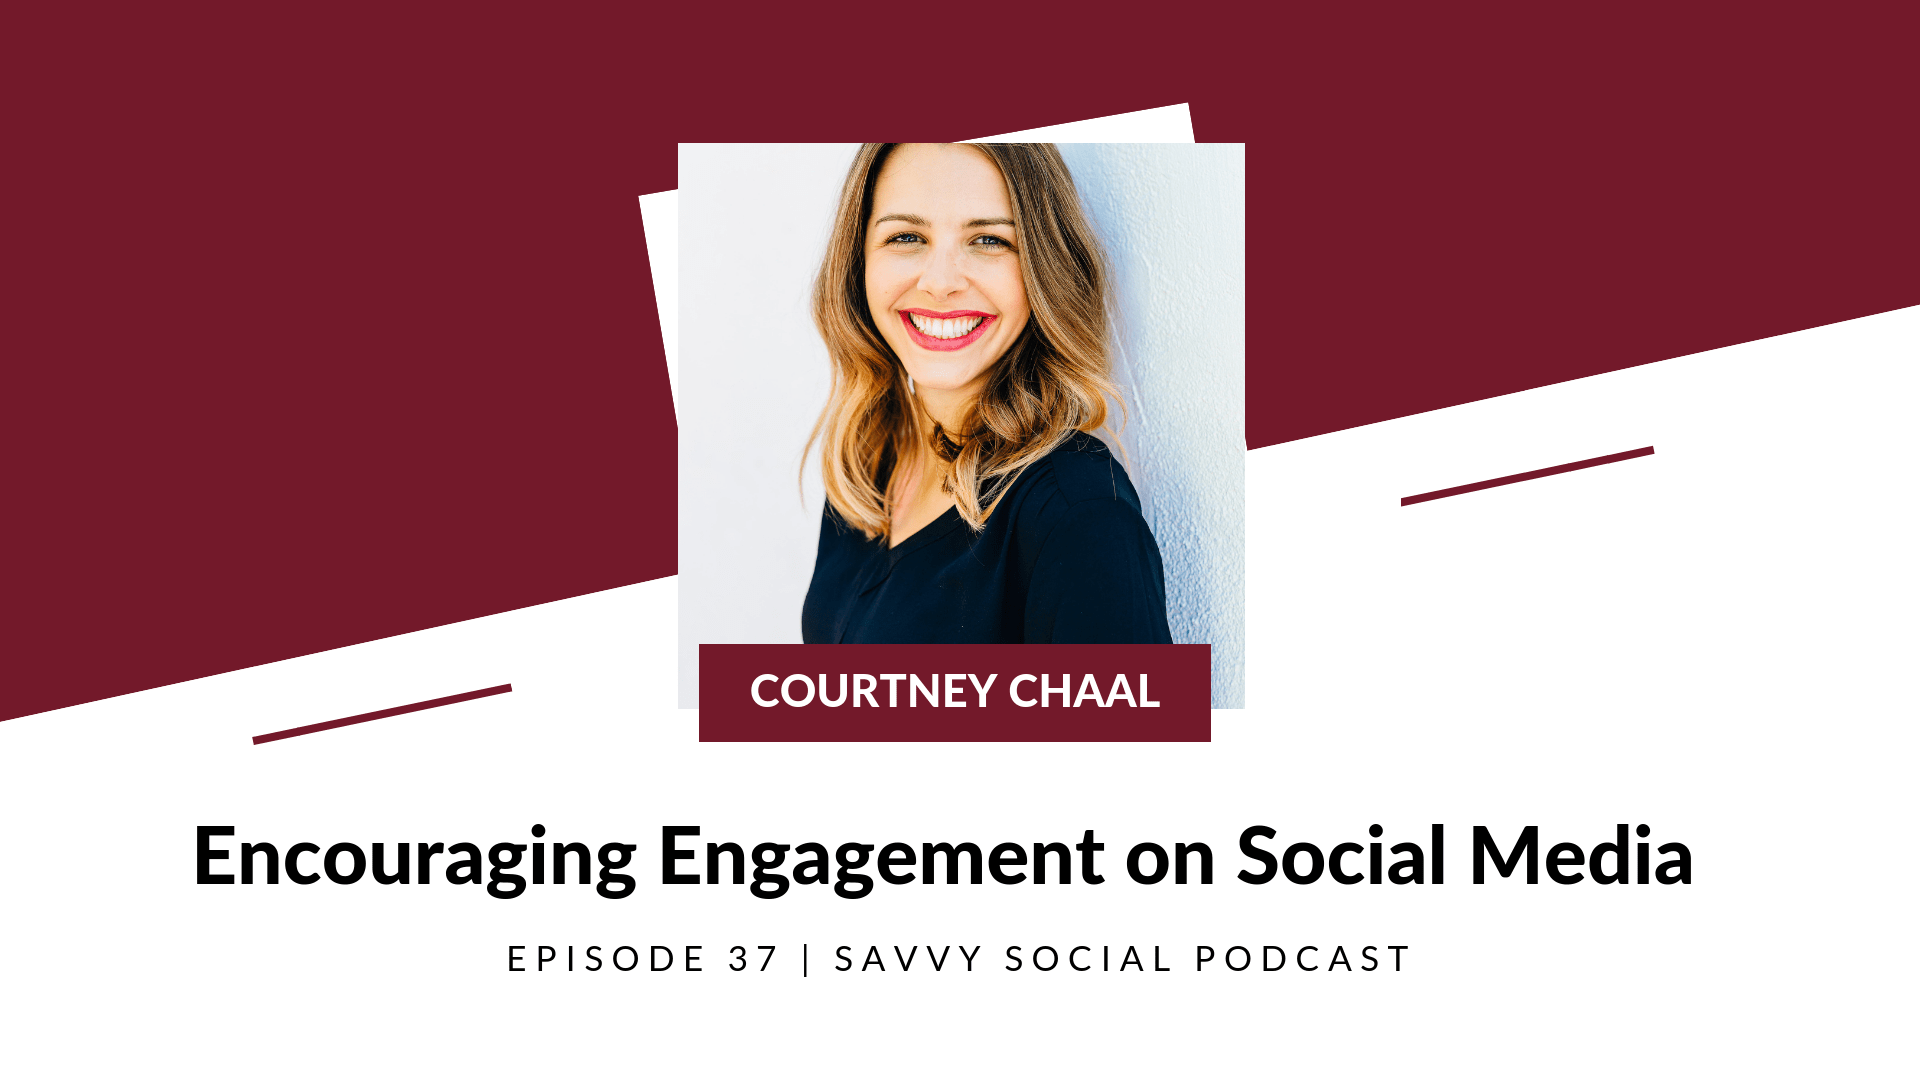 Encouraging Engagement on Social Media with Courtney Chaal